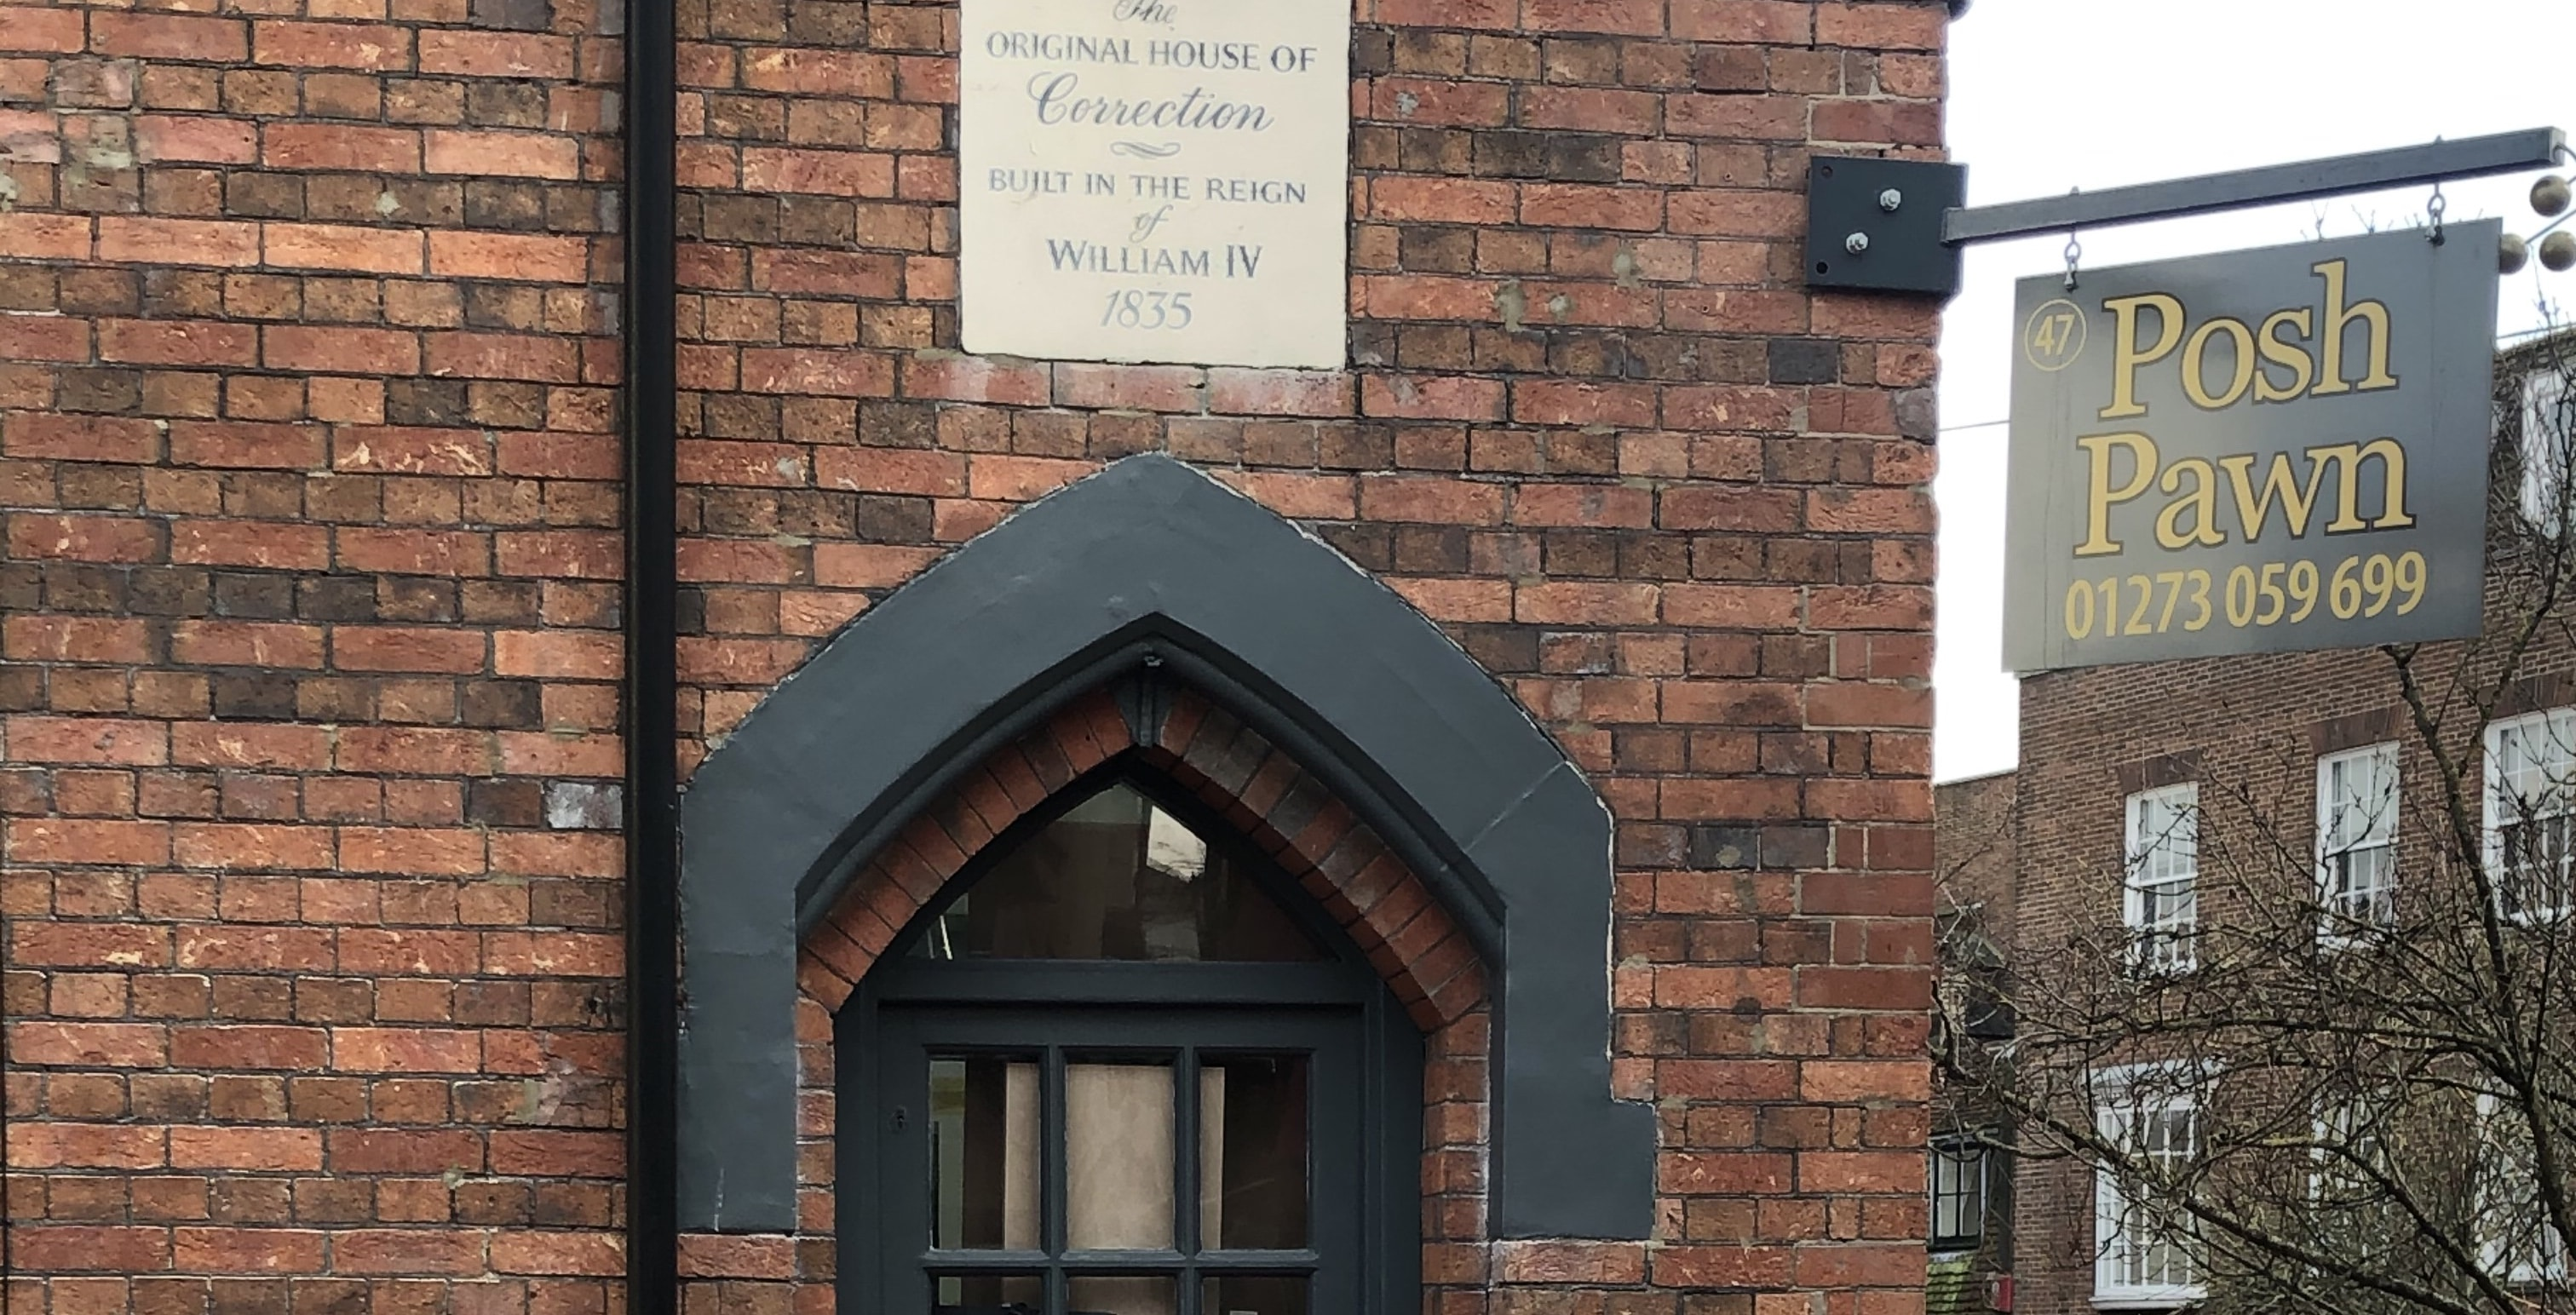 """Qué hacer en Brighton. North Laine y The Lanes. Placa """"The Original House of Correction built in the reign of William IV 1835"""""""